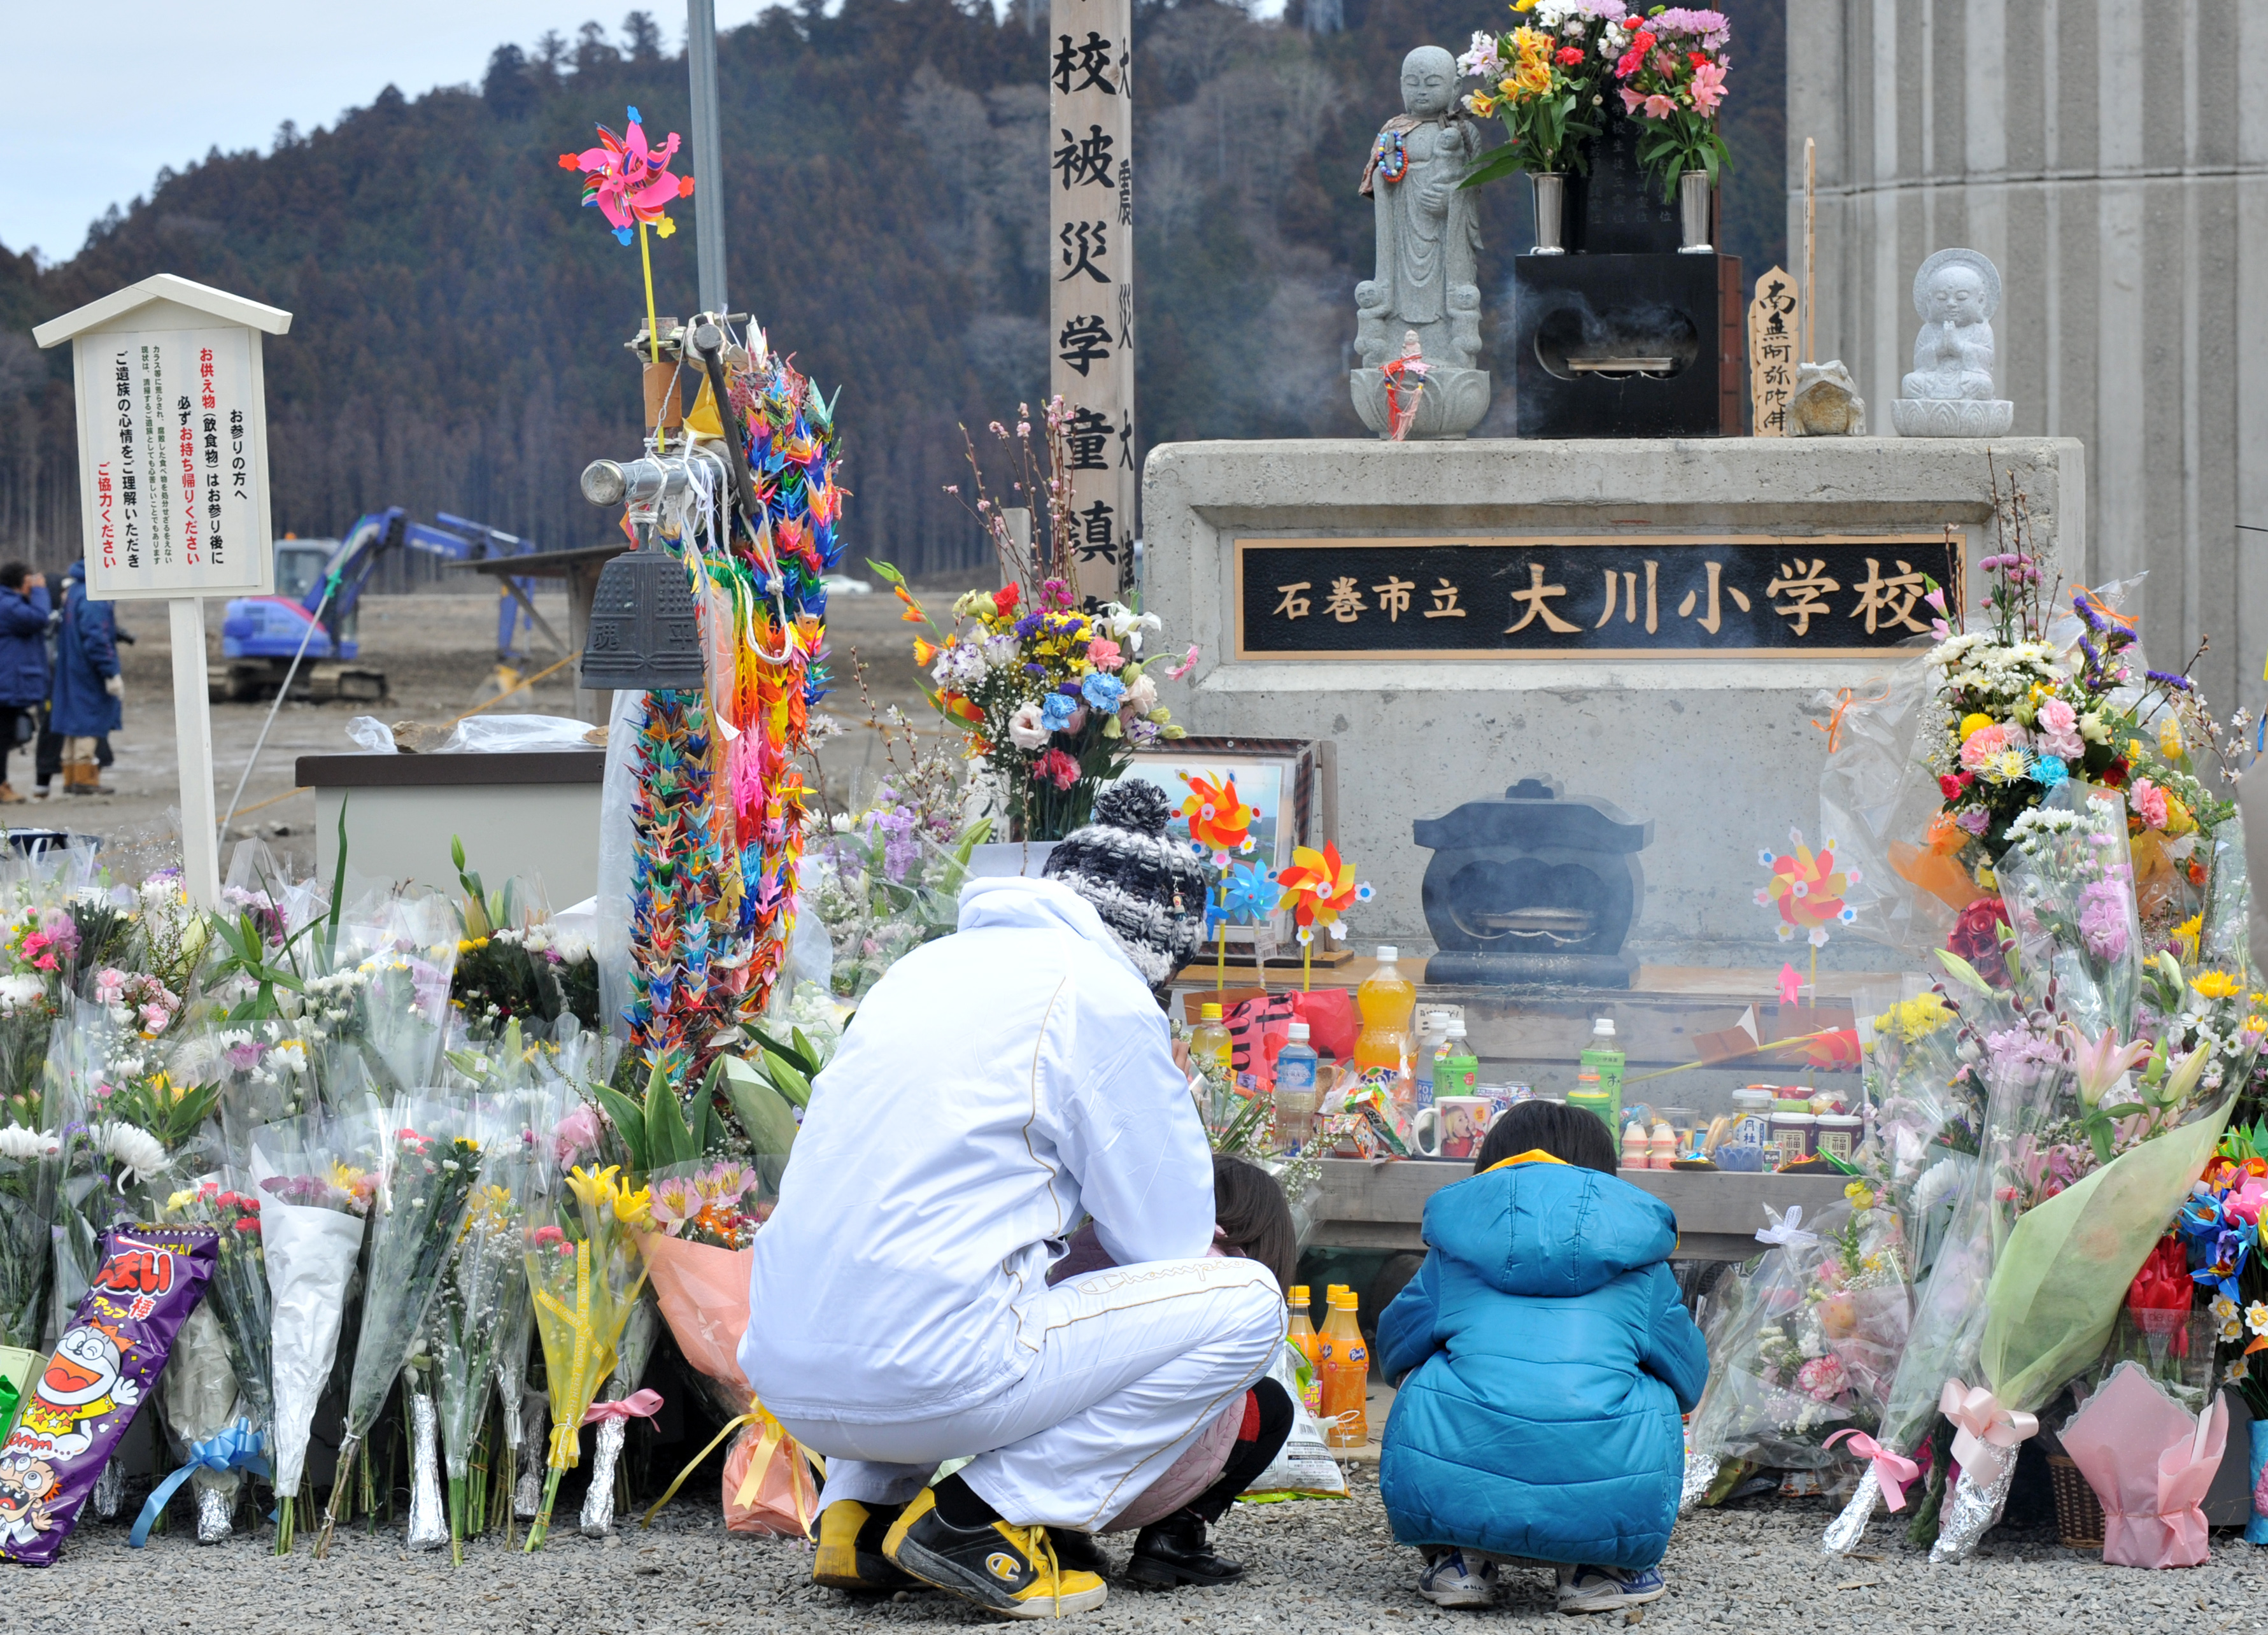 A family pray for 74 elementary-school students and 10 teachers who lost their lives in the March 11, 2011, earthquake and tsunami, at a memorial in front of the Okawa Elementary School during the first year anniversary of the disaster in Onagawa, Japan, on March 11, 2012